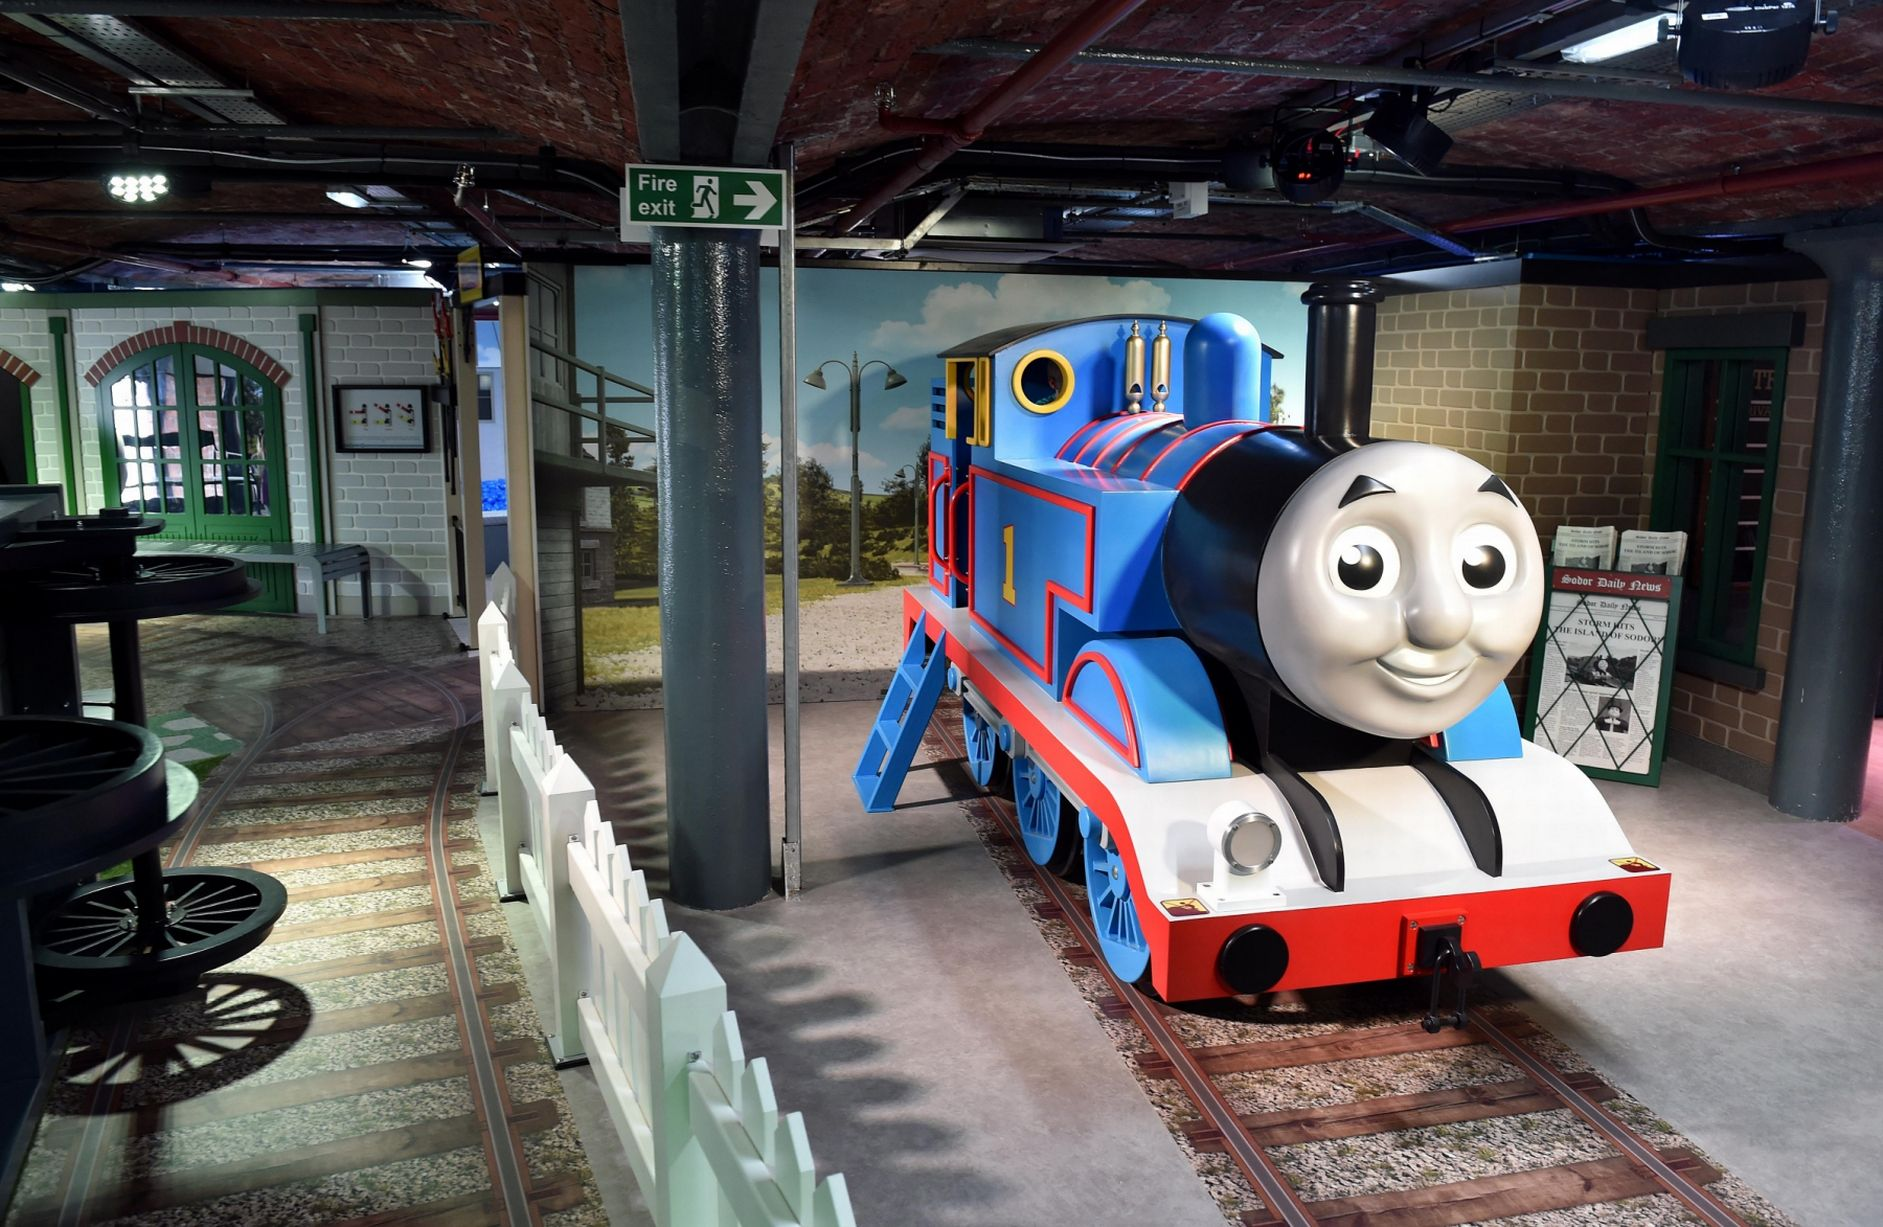 MATTEL PLAY <strong>| Life-size playful Thomas & Friends with custom designed puzzels and games</strong>